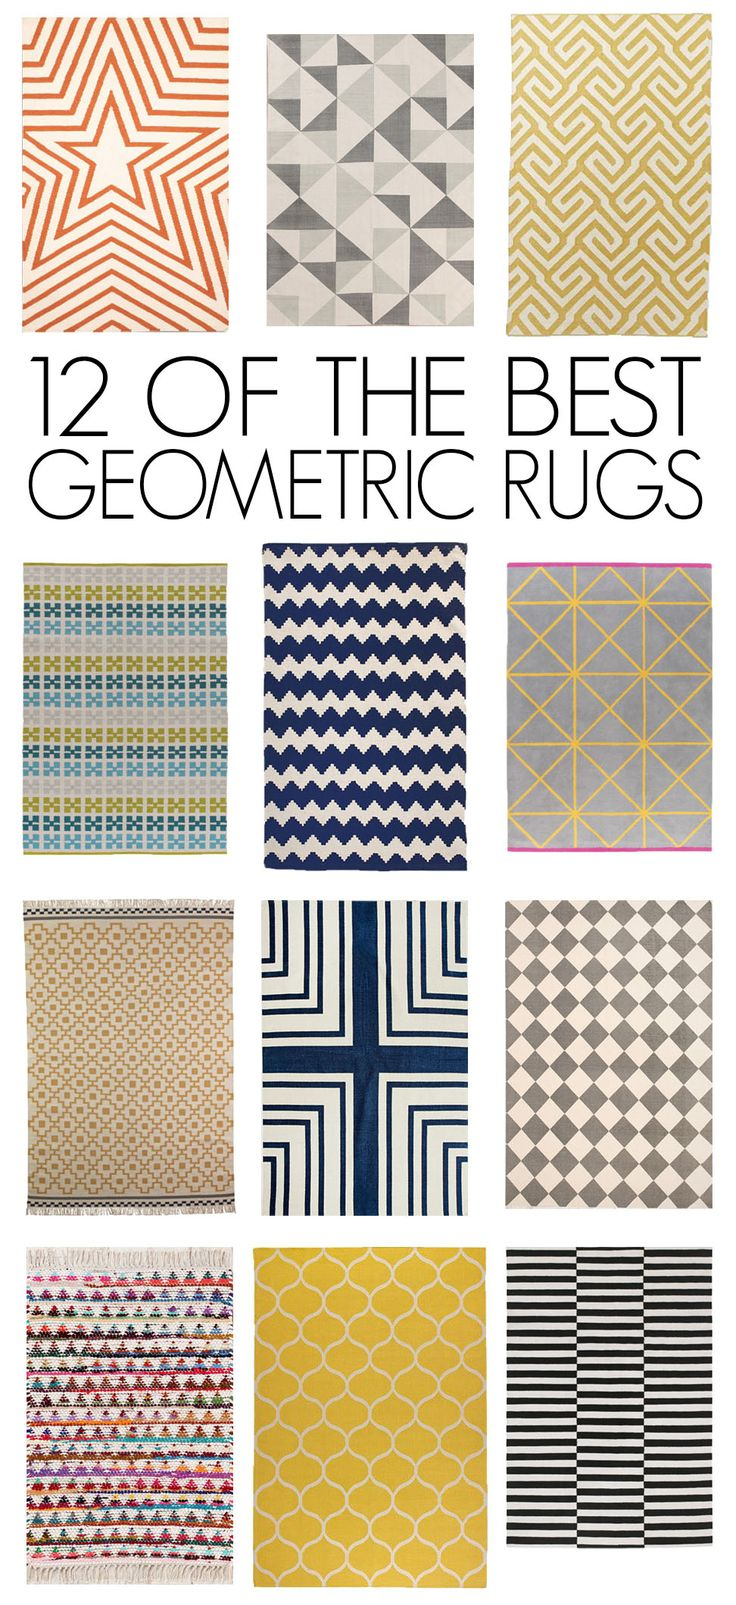 12 of the Best (Affordable!) Geometric Rugs. Been eyeballing the one on the bottom right from Ikea awhile now.